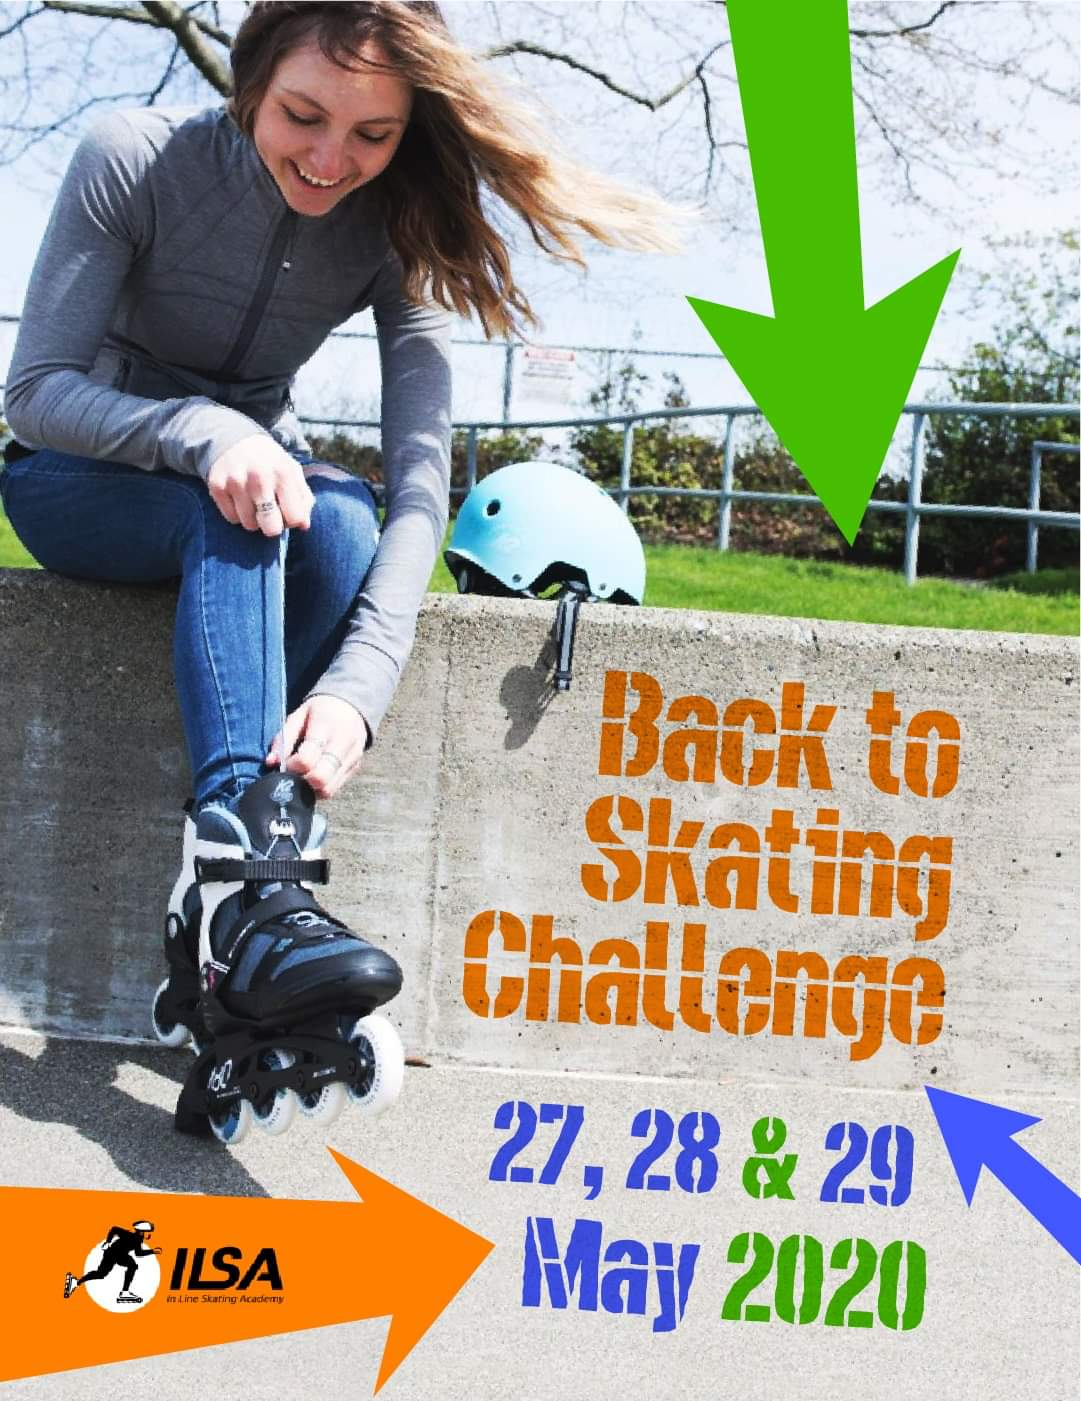 ILSA back to skating challenge